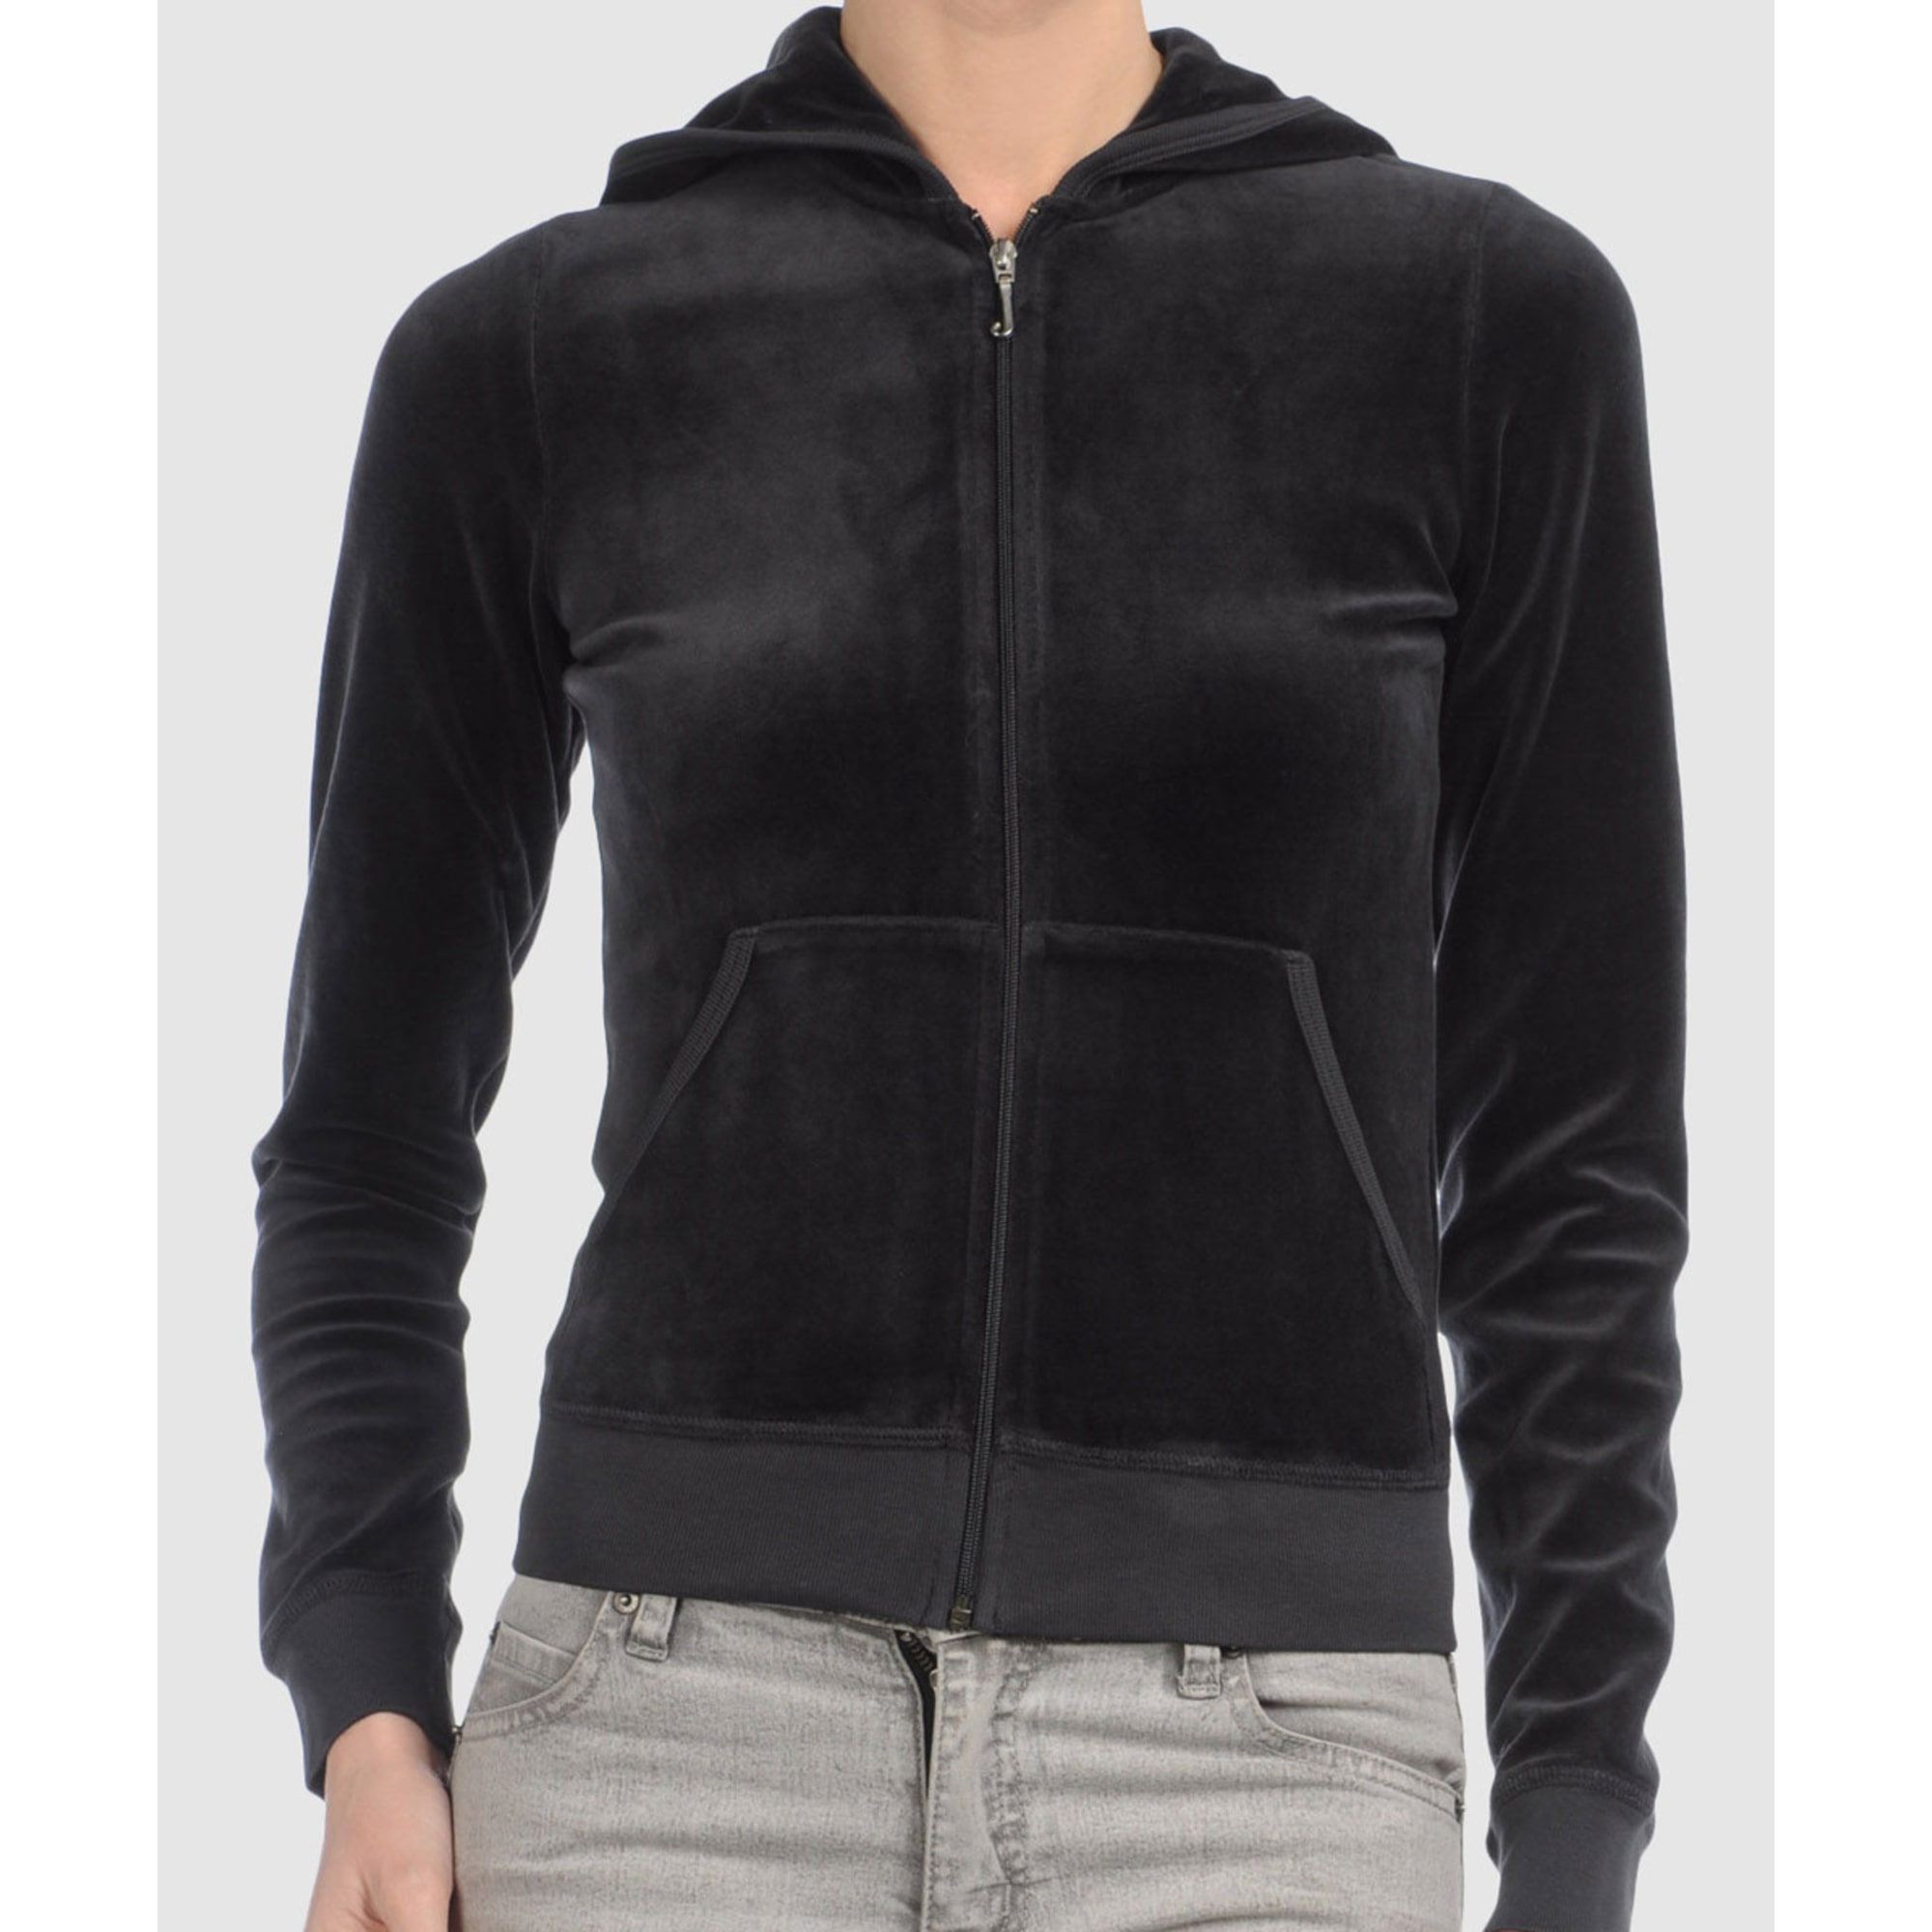 Sweat JUICY COUTURE Gris, anthracite